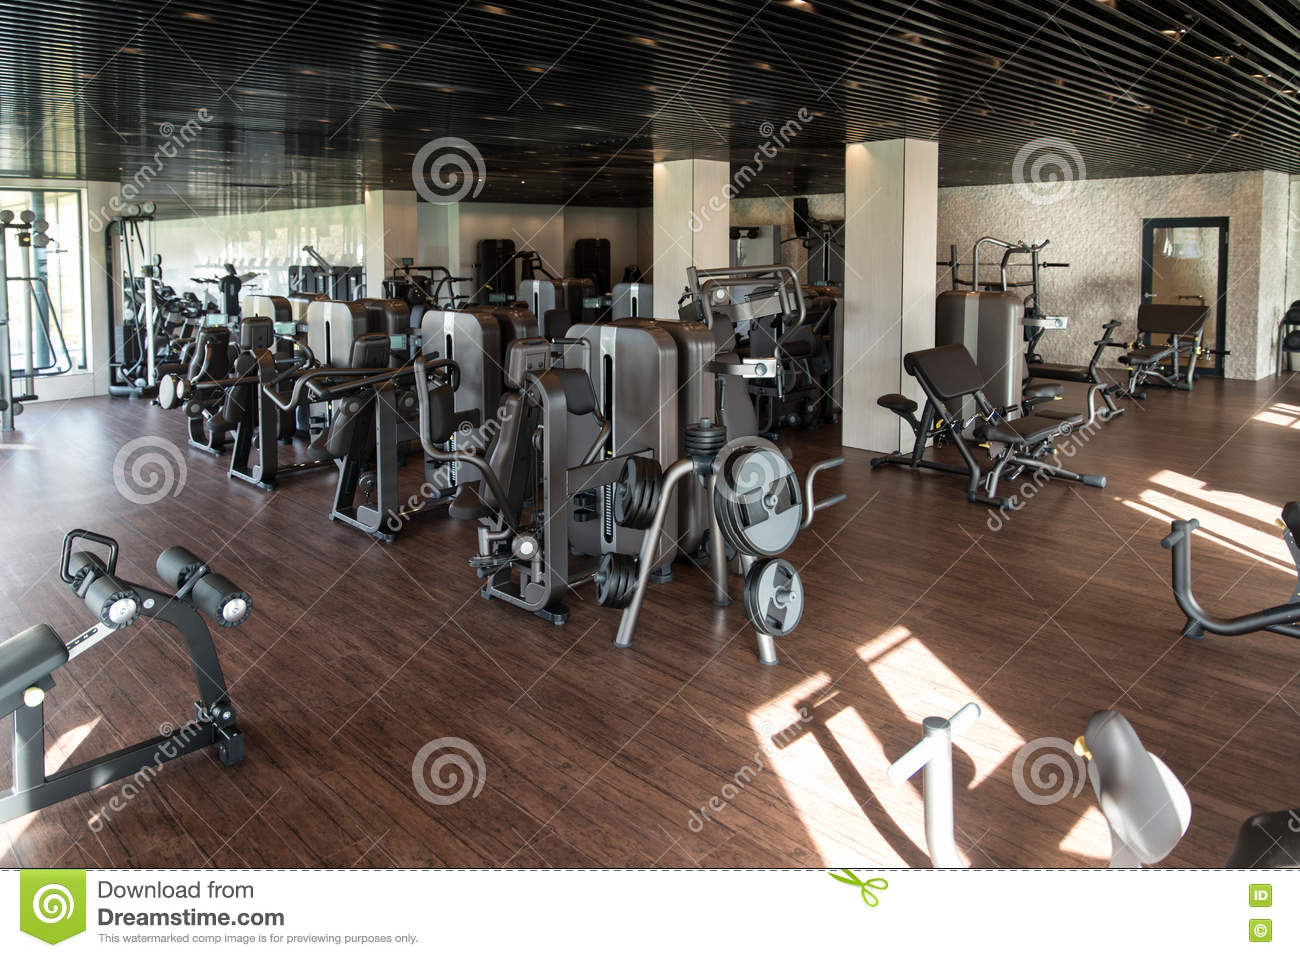 Exercise machines in a modern gym stock image image of fitness